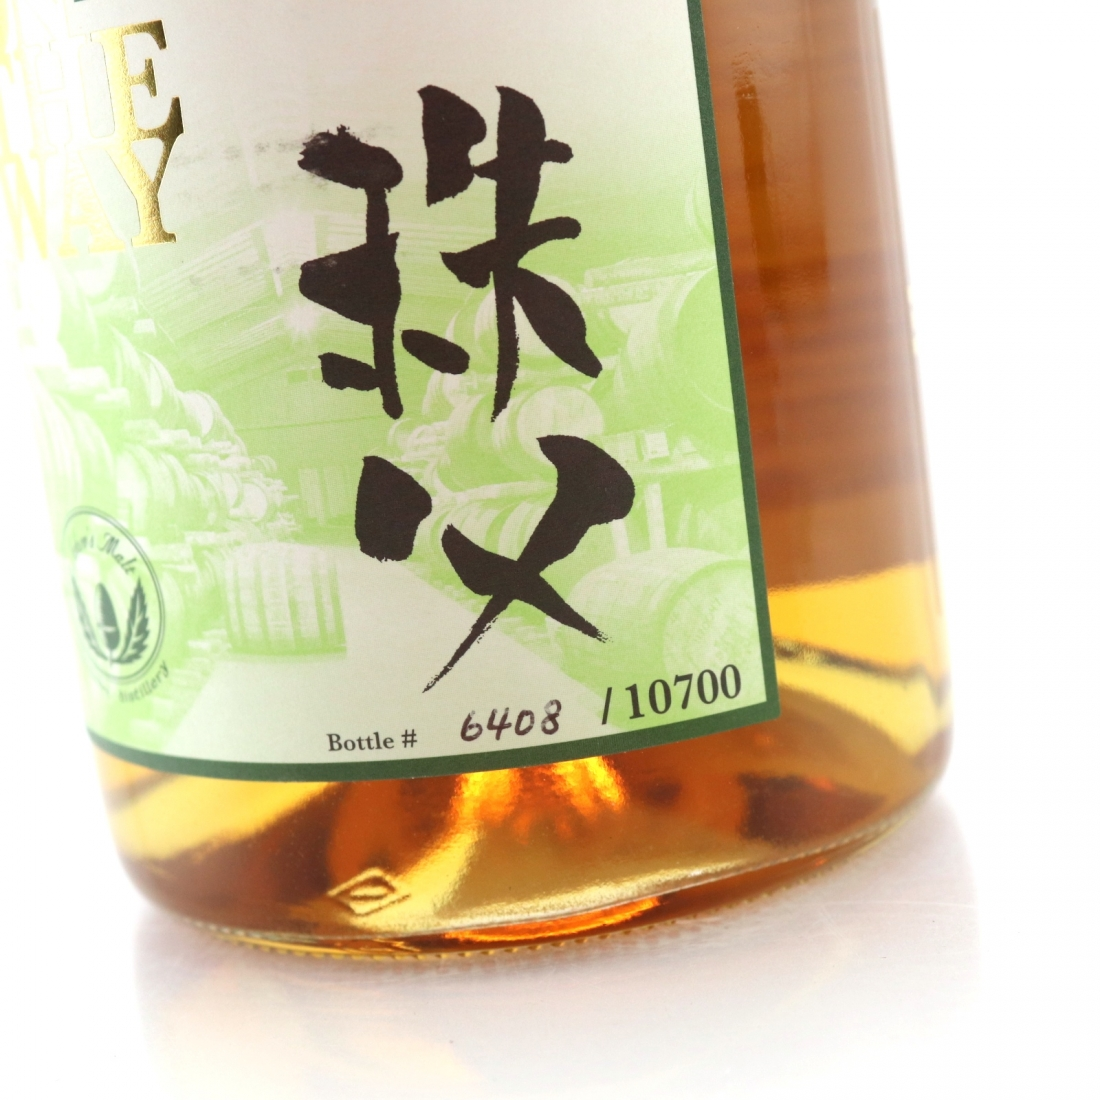 Chichibu Ichiro's Malt On The Way 2015 Release